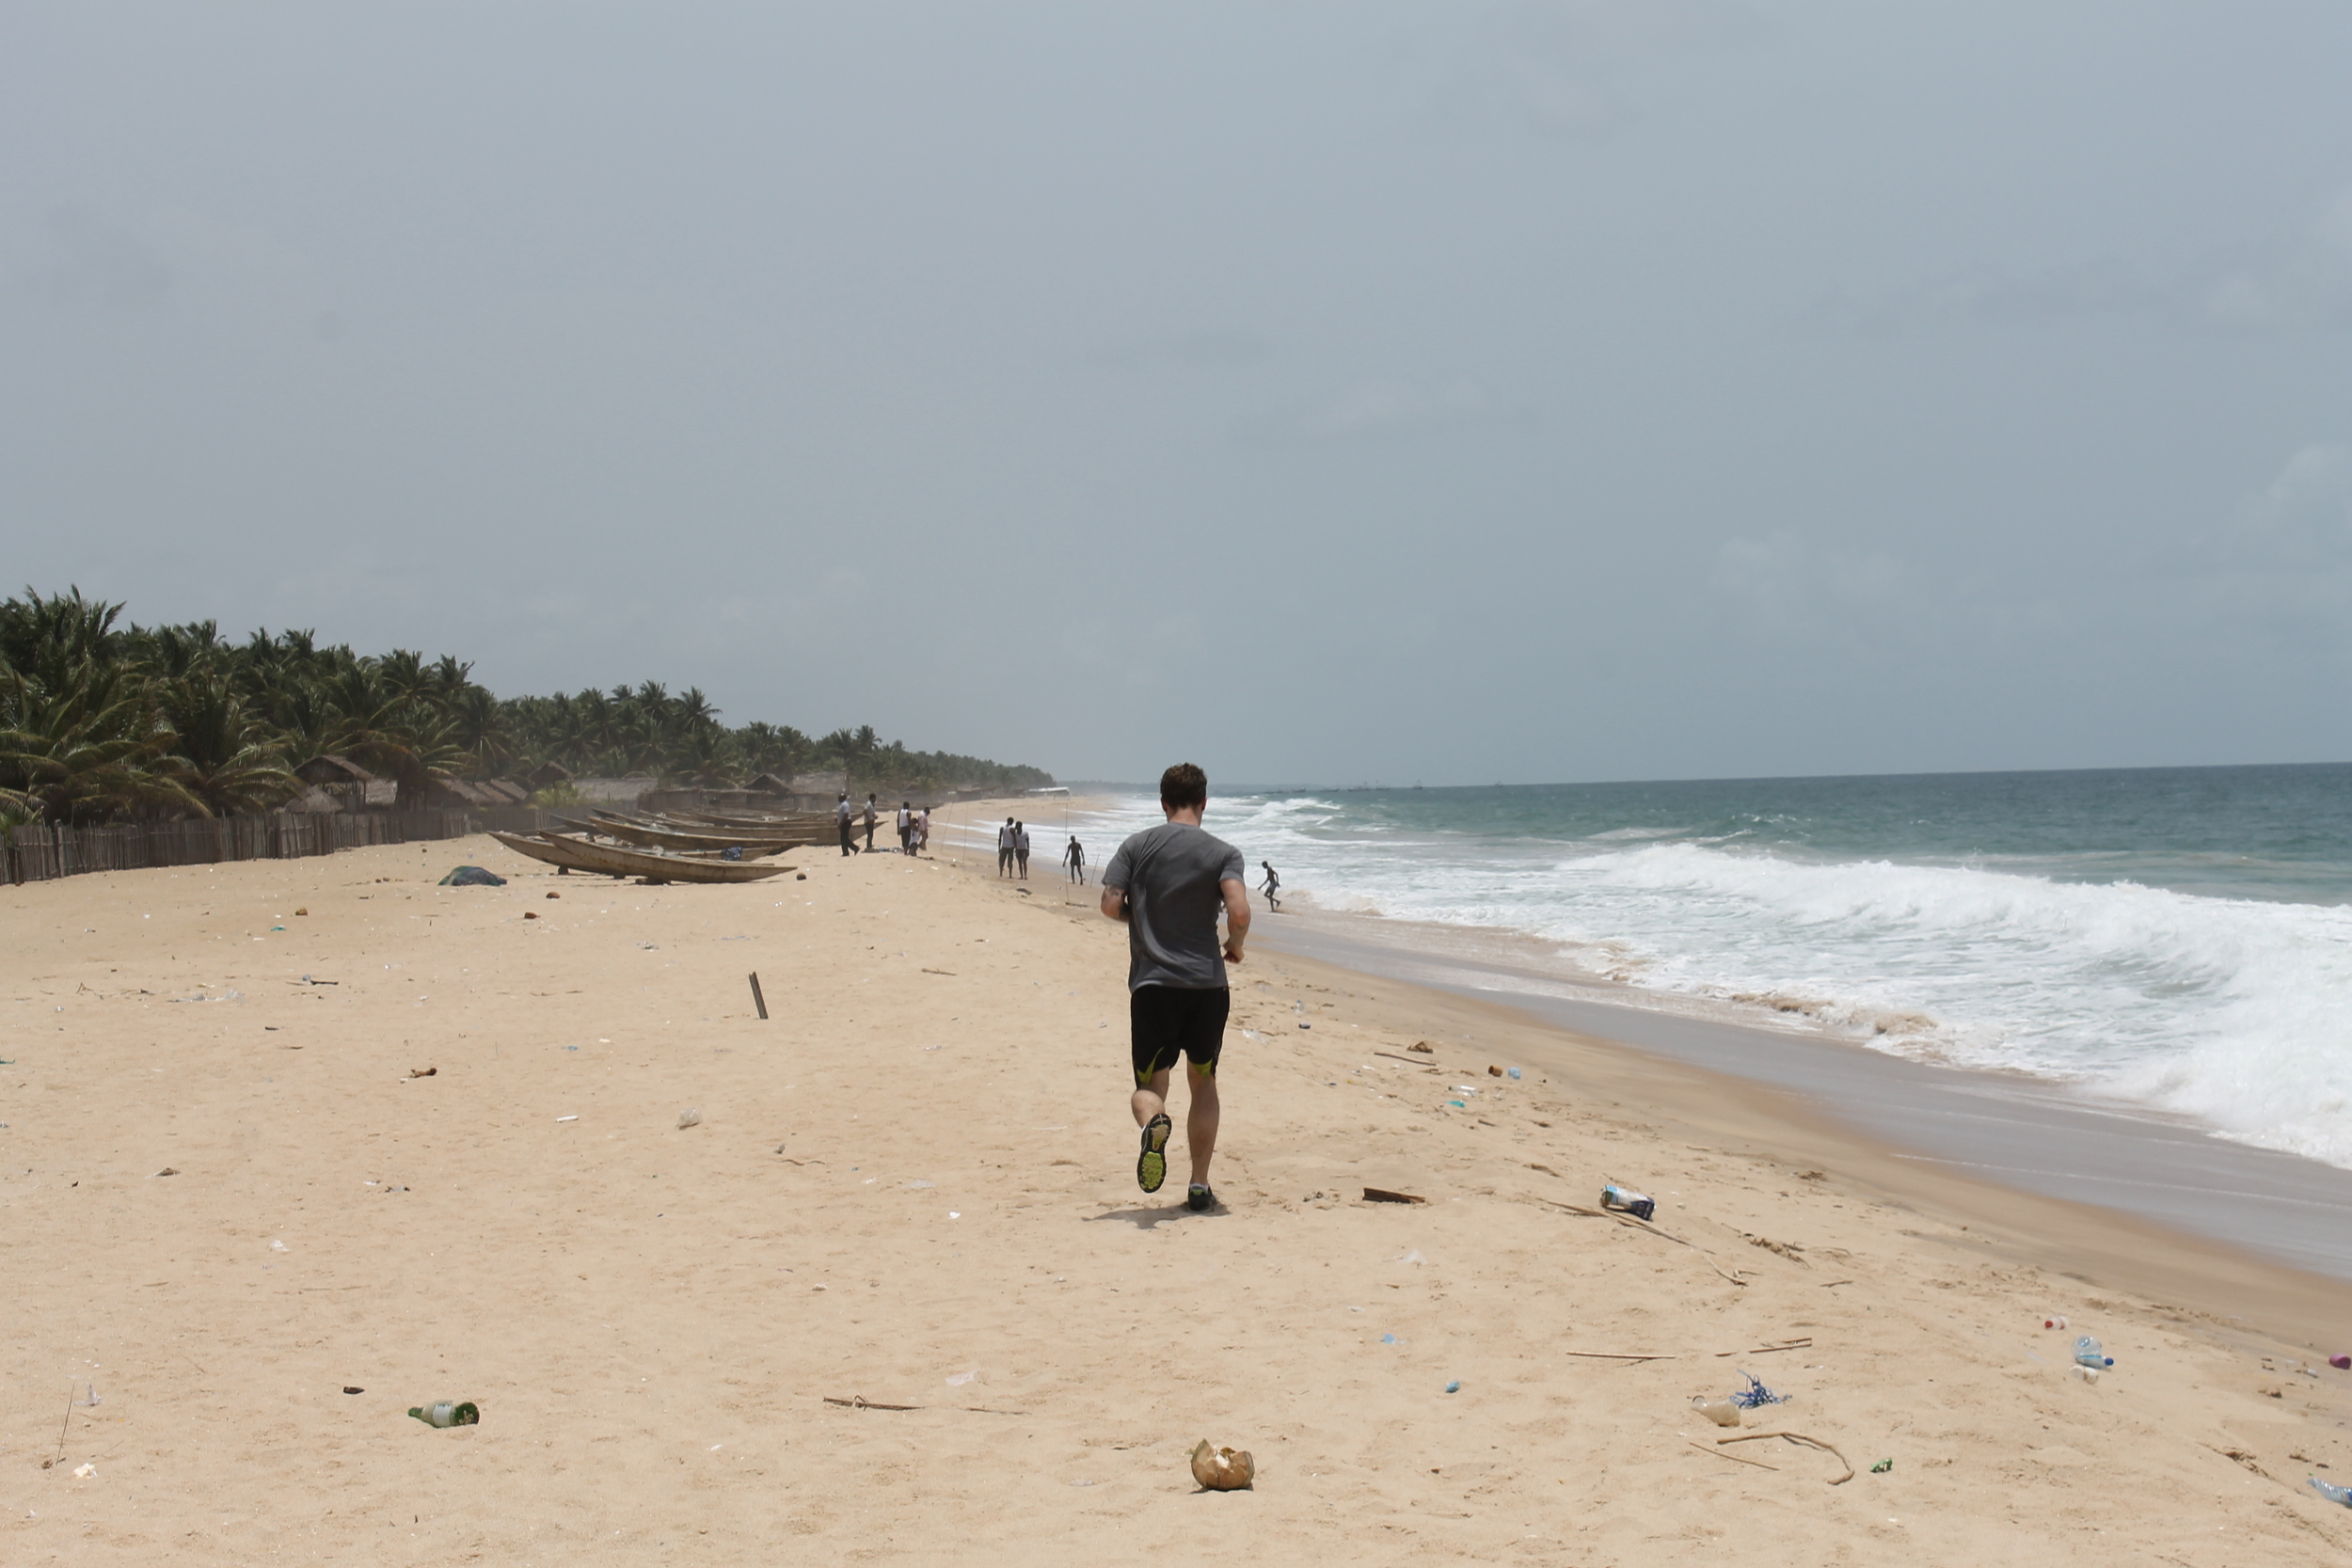 E hitting a beach run on Eleko Beach outside of Lagos, Nigeria. March 24, 2013.